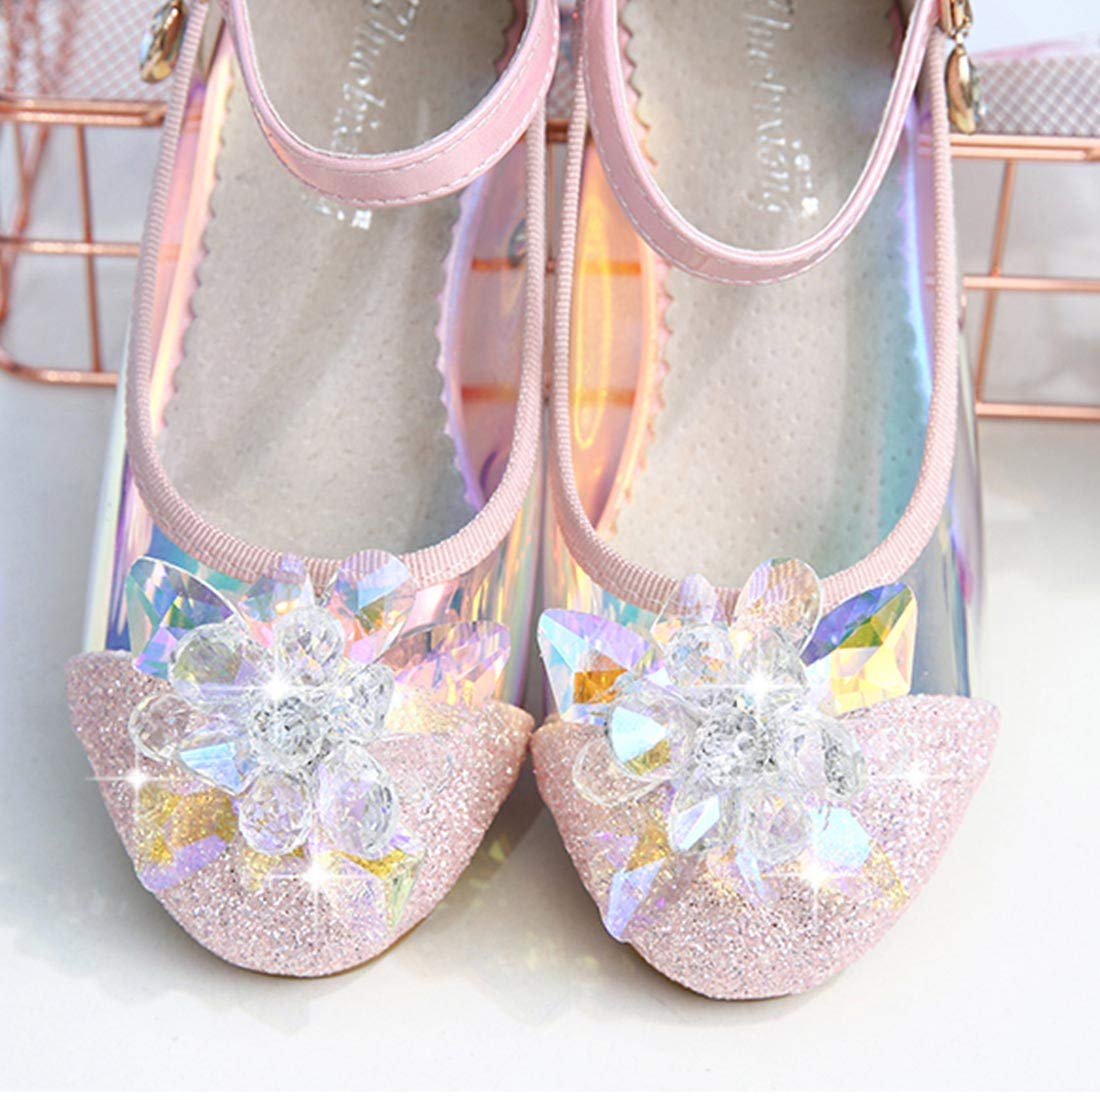 YIBLBOX Toddler Girls Copplay Pirncess Wedding Party Dress Shoes with Crystal Flower Mary Janes Sandals